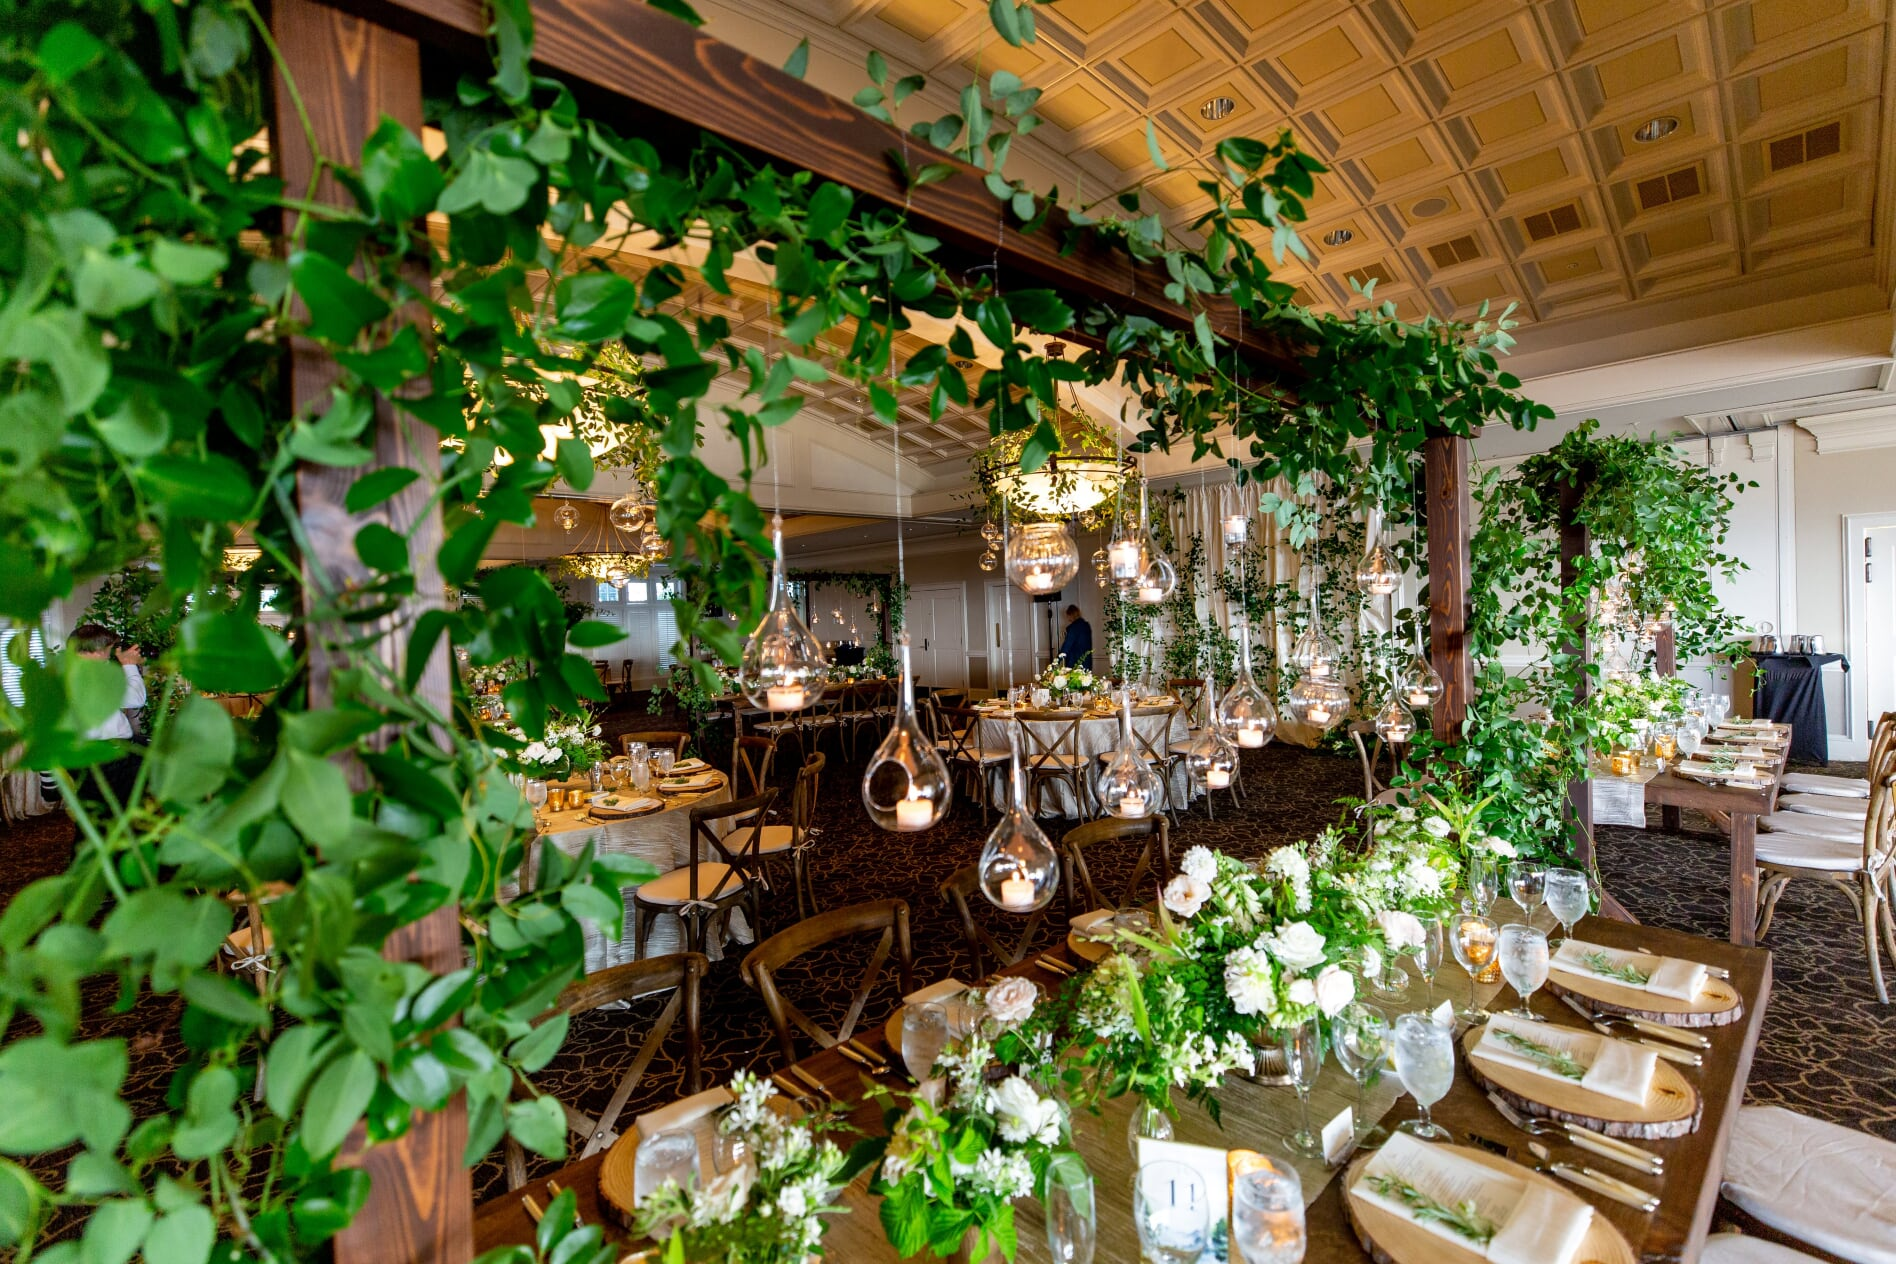 Midsummer Night's Dream Weddding Trellis over dining table hung with green vines and hanging candles